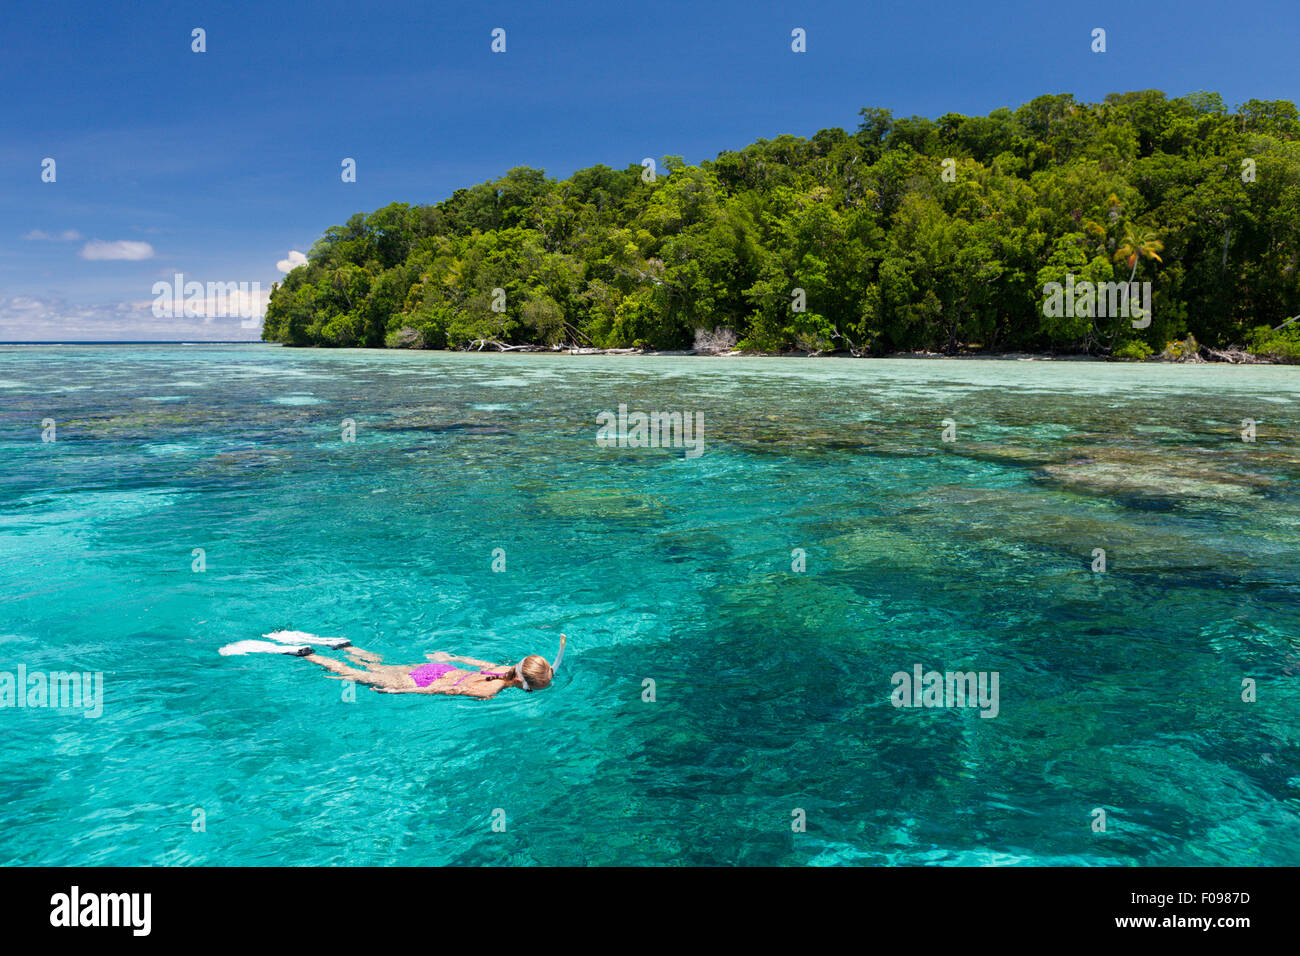 Snorkeling at Solomon Islands, Marovo Lagoon, Solomon Islands - Stock Image